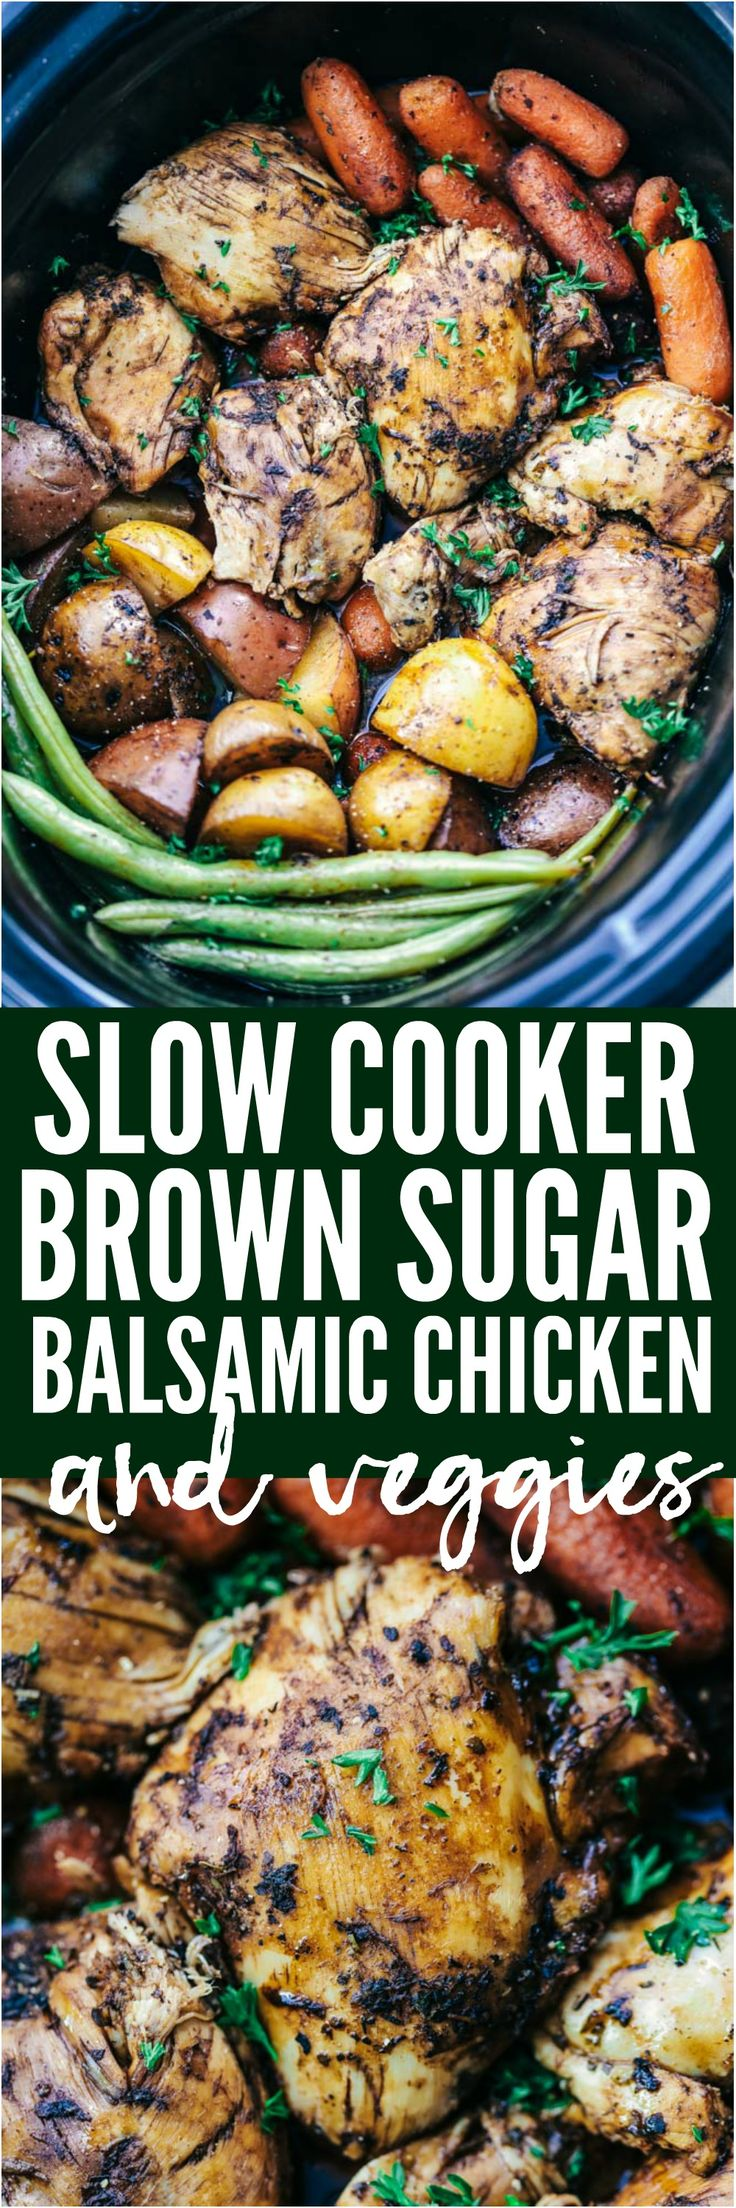 Slow Cooker Brown Sugar Balsamic Chicken and Vegetables is a fantastic meal with tender and juicy chicken with a delicious sweet and tangy balsamic sauce. This slow cooks to perfection with veggies making an awesome meal in one!